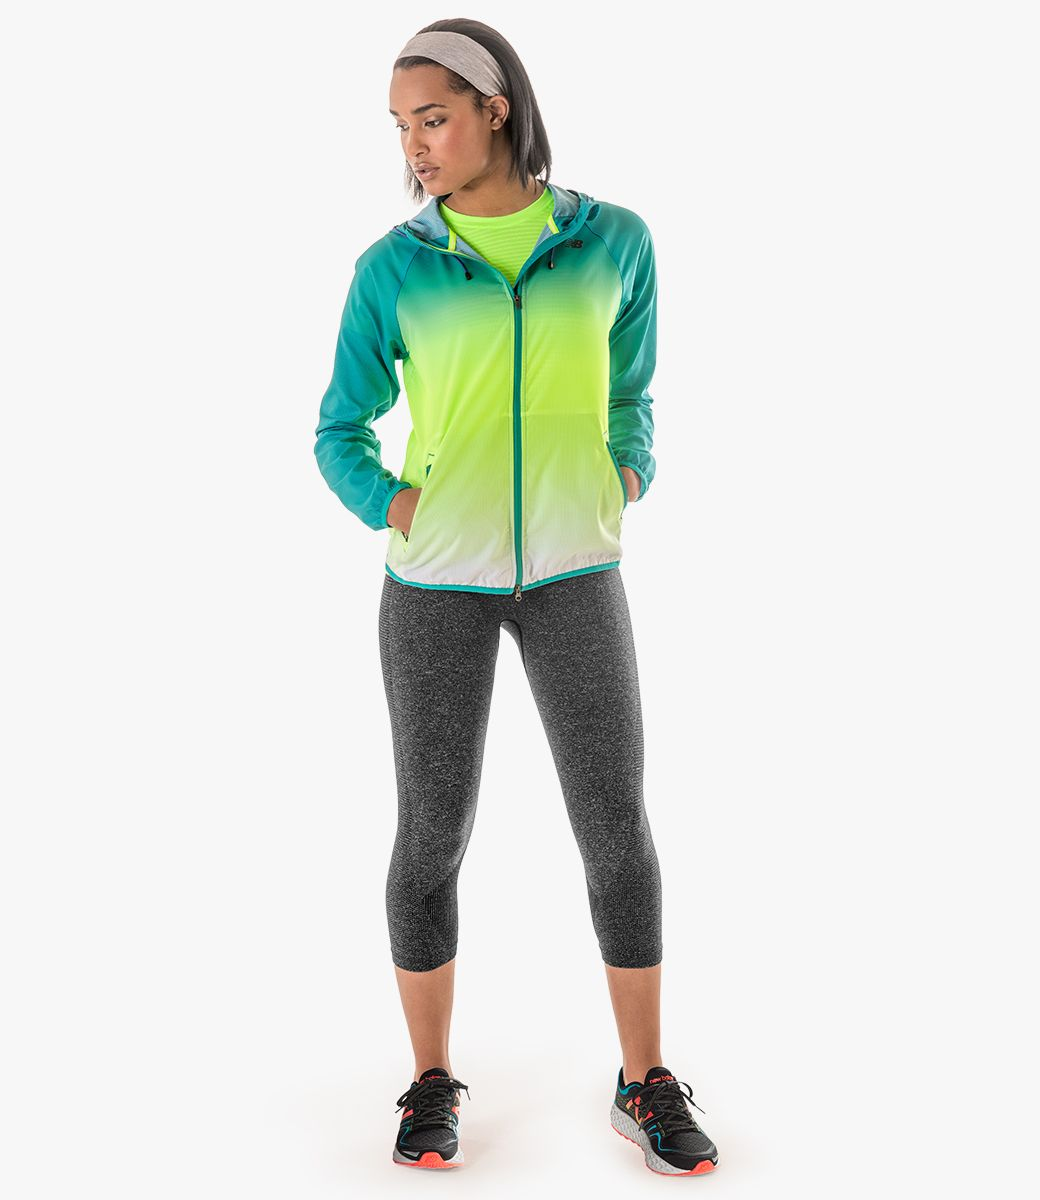 New Balance Womens Vongo and M4M Seamless Apparel,